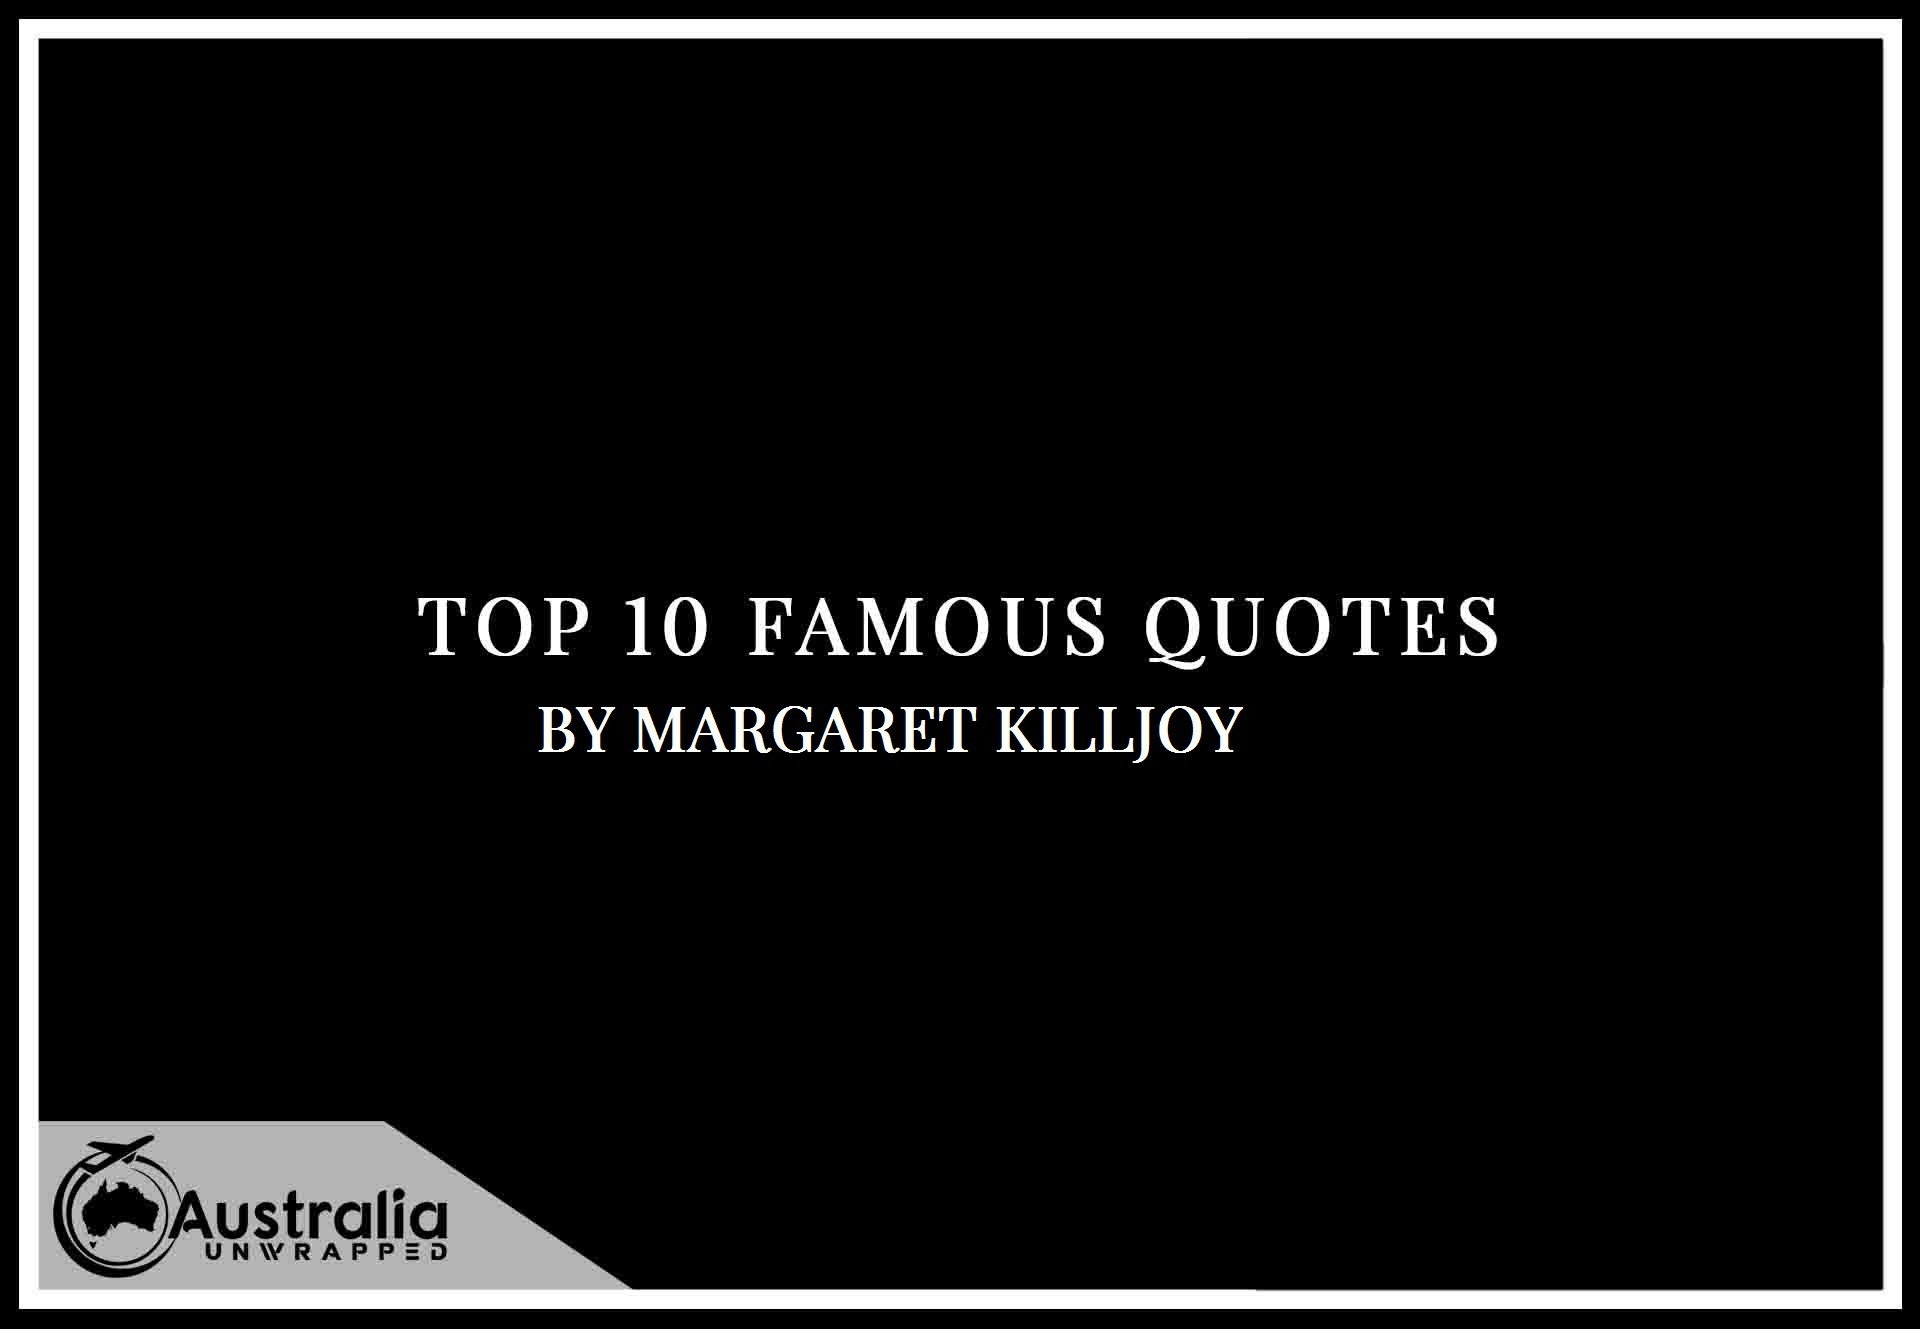 Margaret Killjoy's Top 10 Popular and Famous Quotes